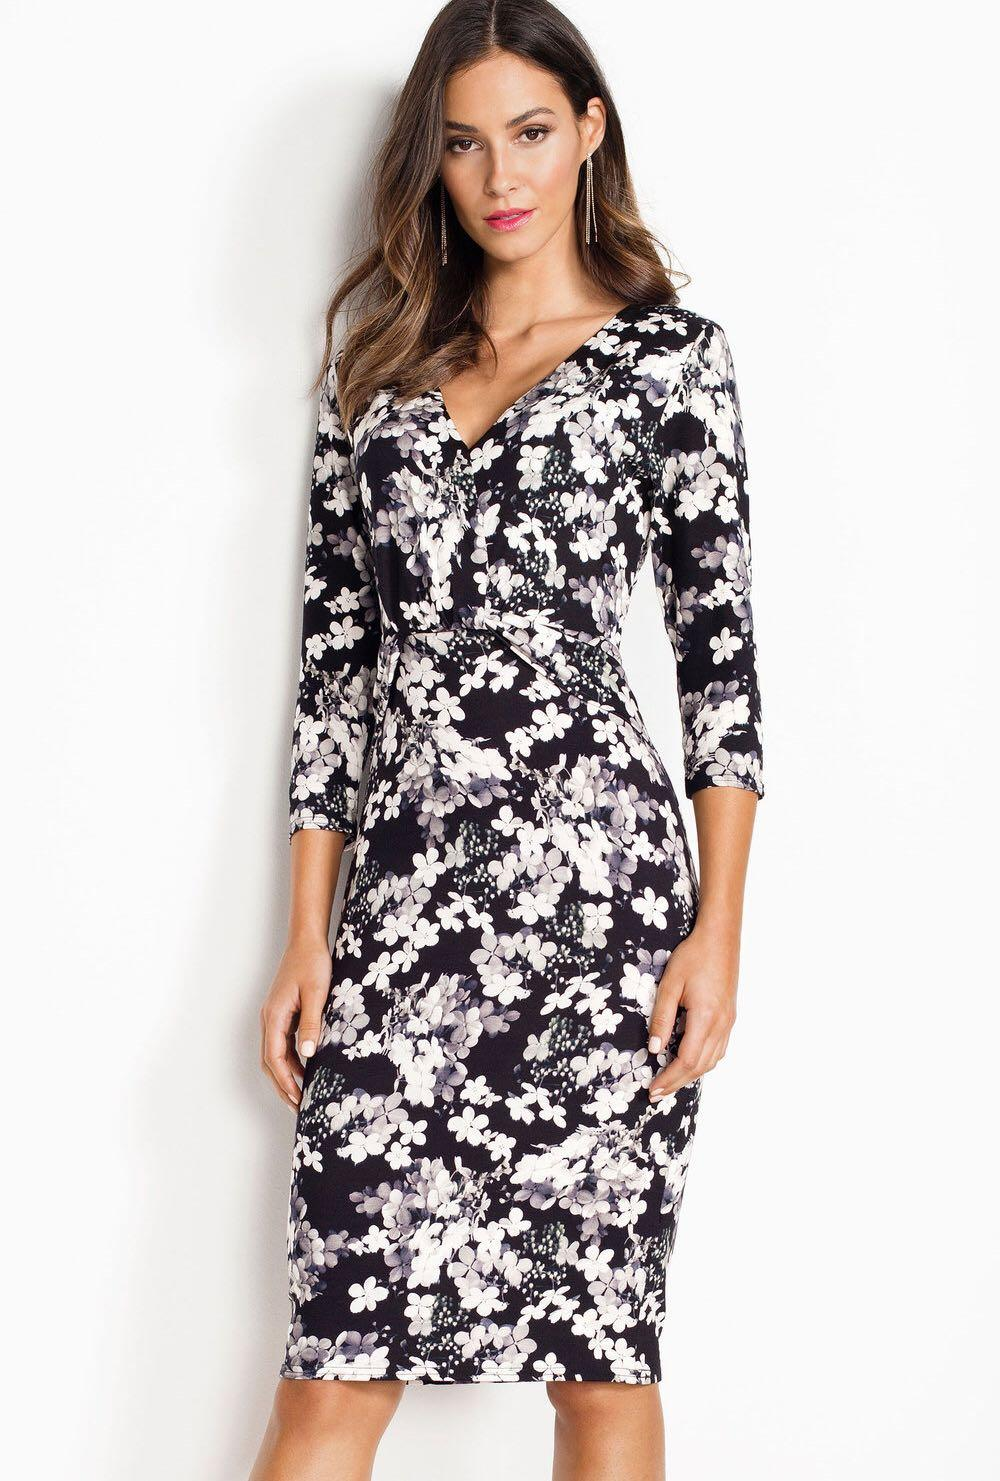 Phase Eight Mollie Dress Size 10 (or